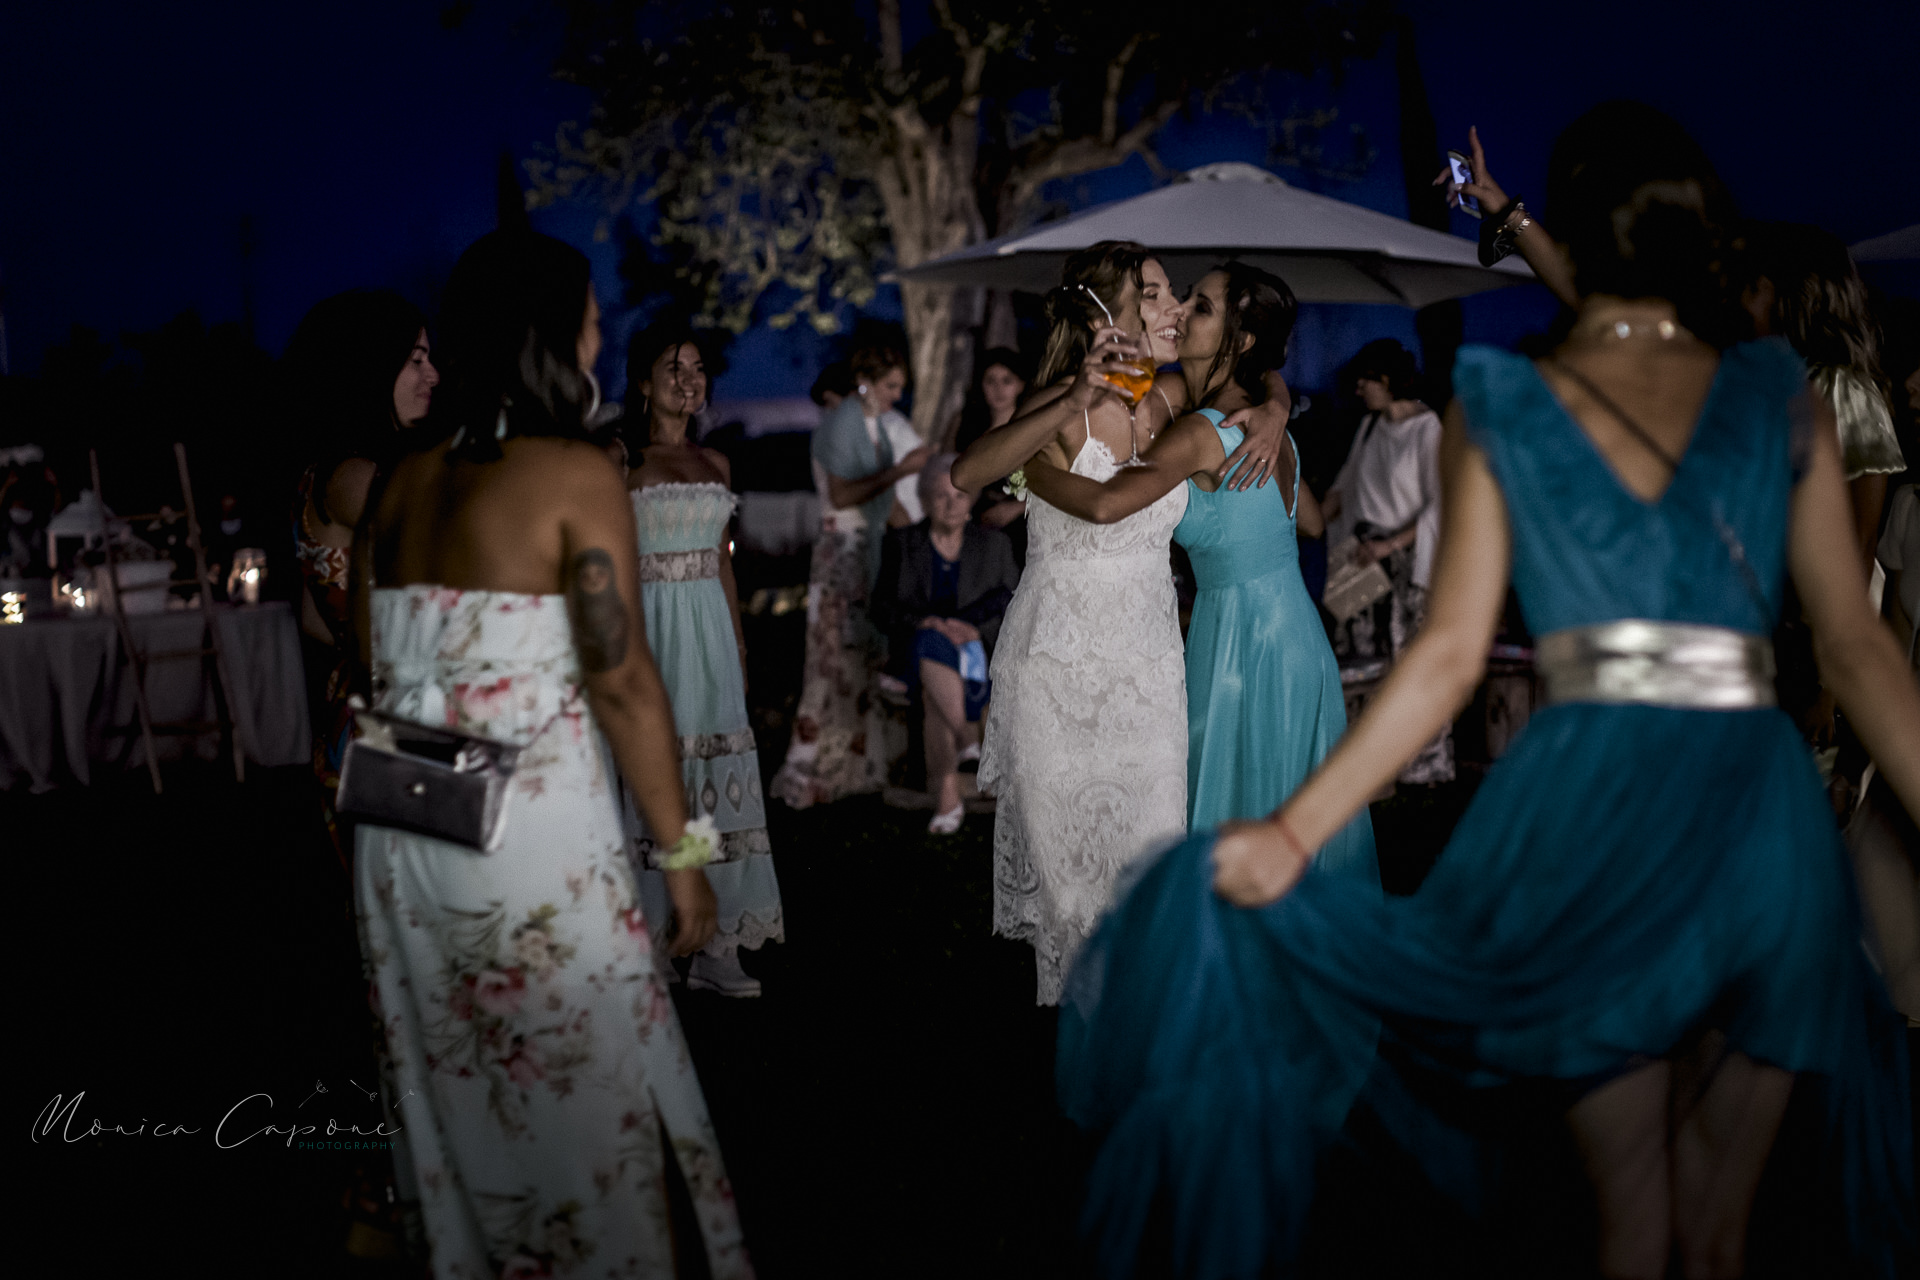 reportage-wedding-in-italy